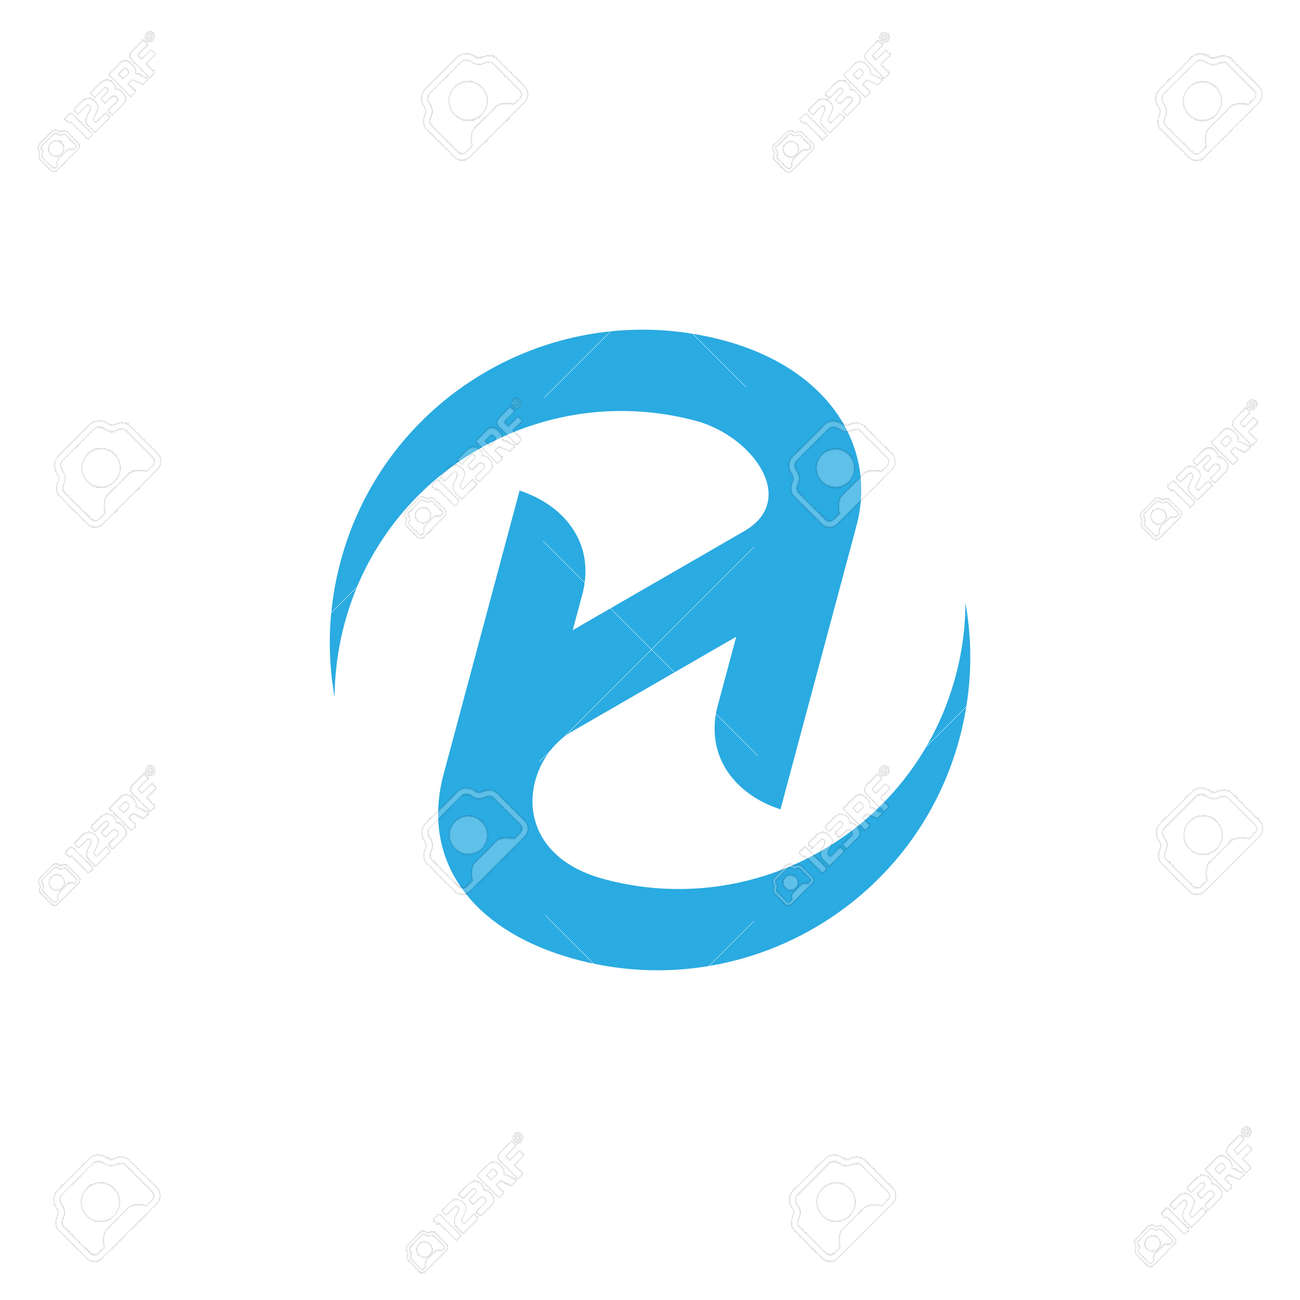 letter zh rotate motion logo vector - 141833637